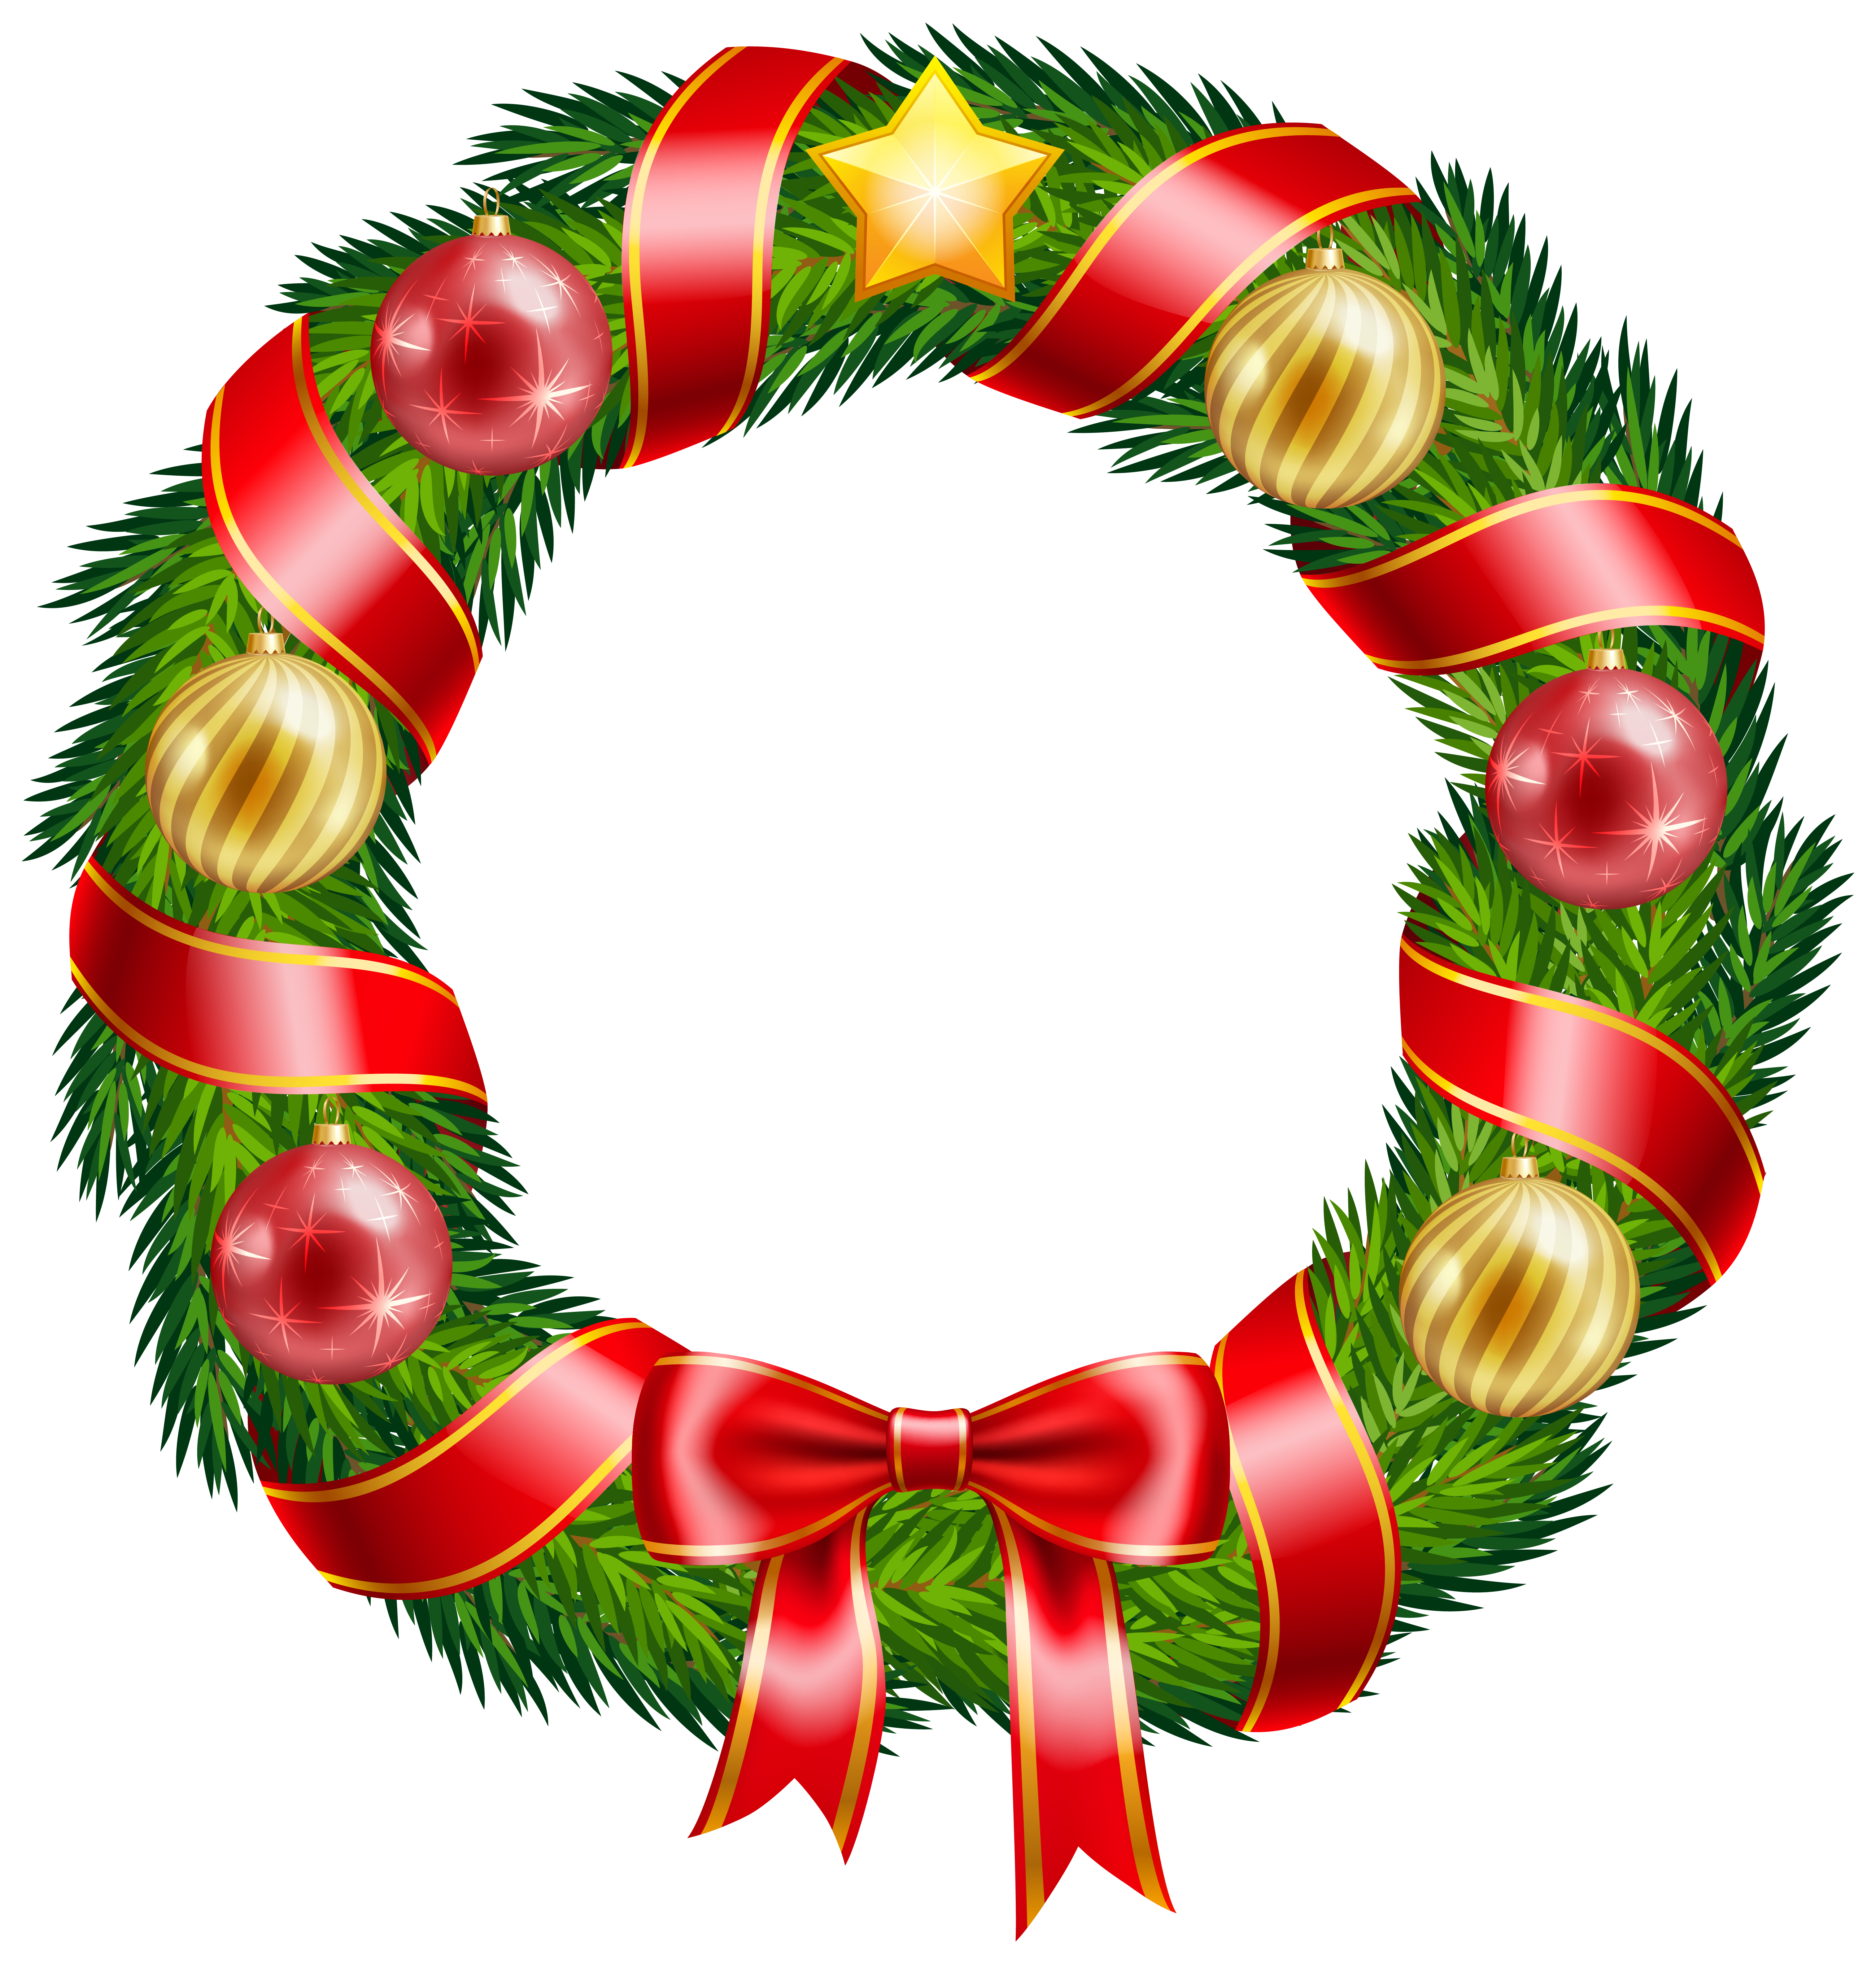 Clipart bow wreath bow. Christmas with ornaments and